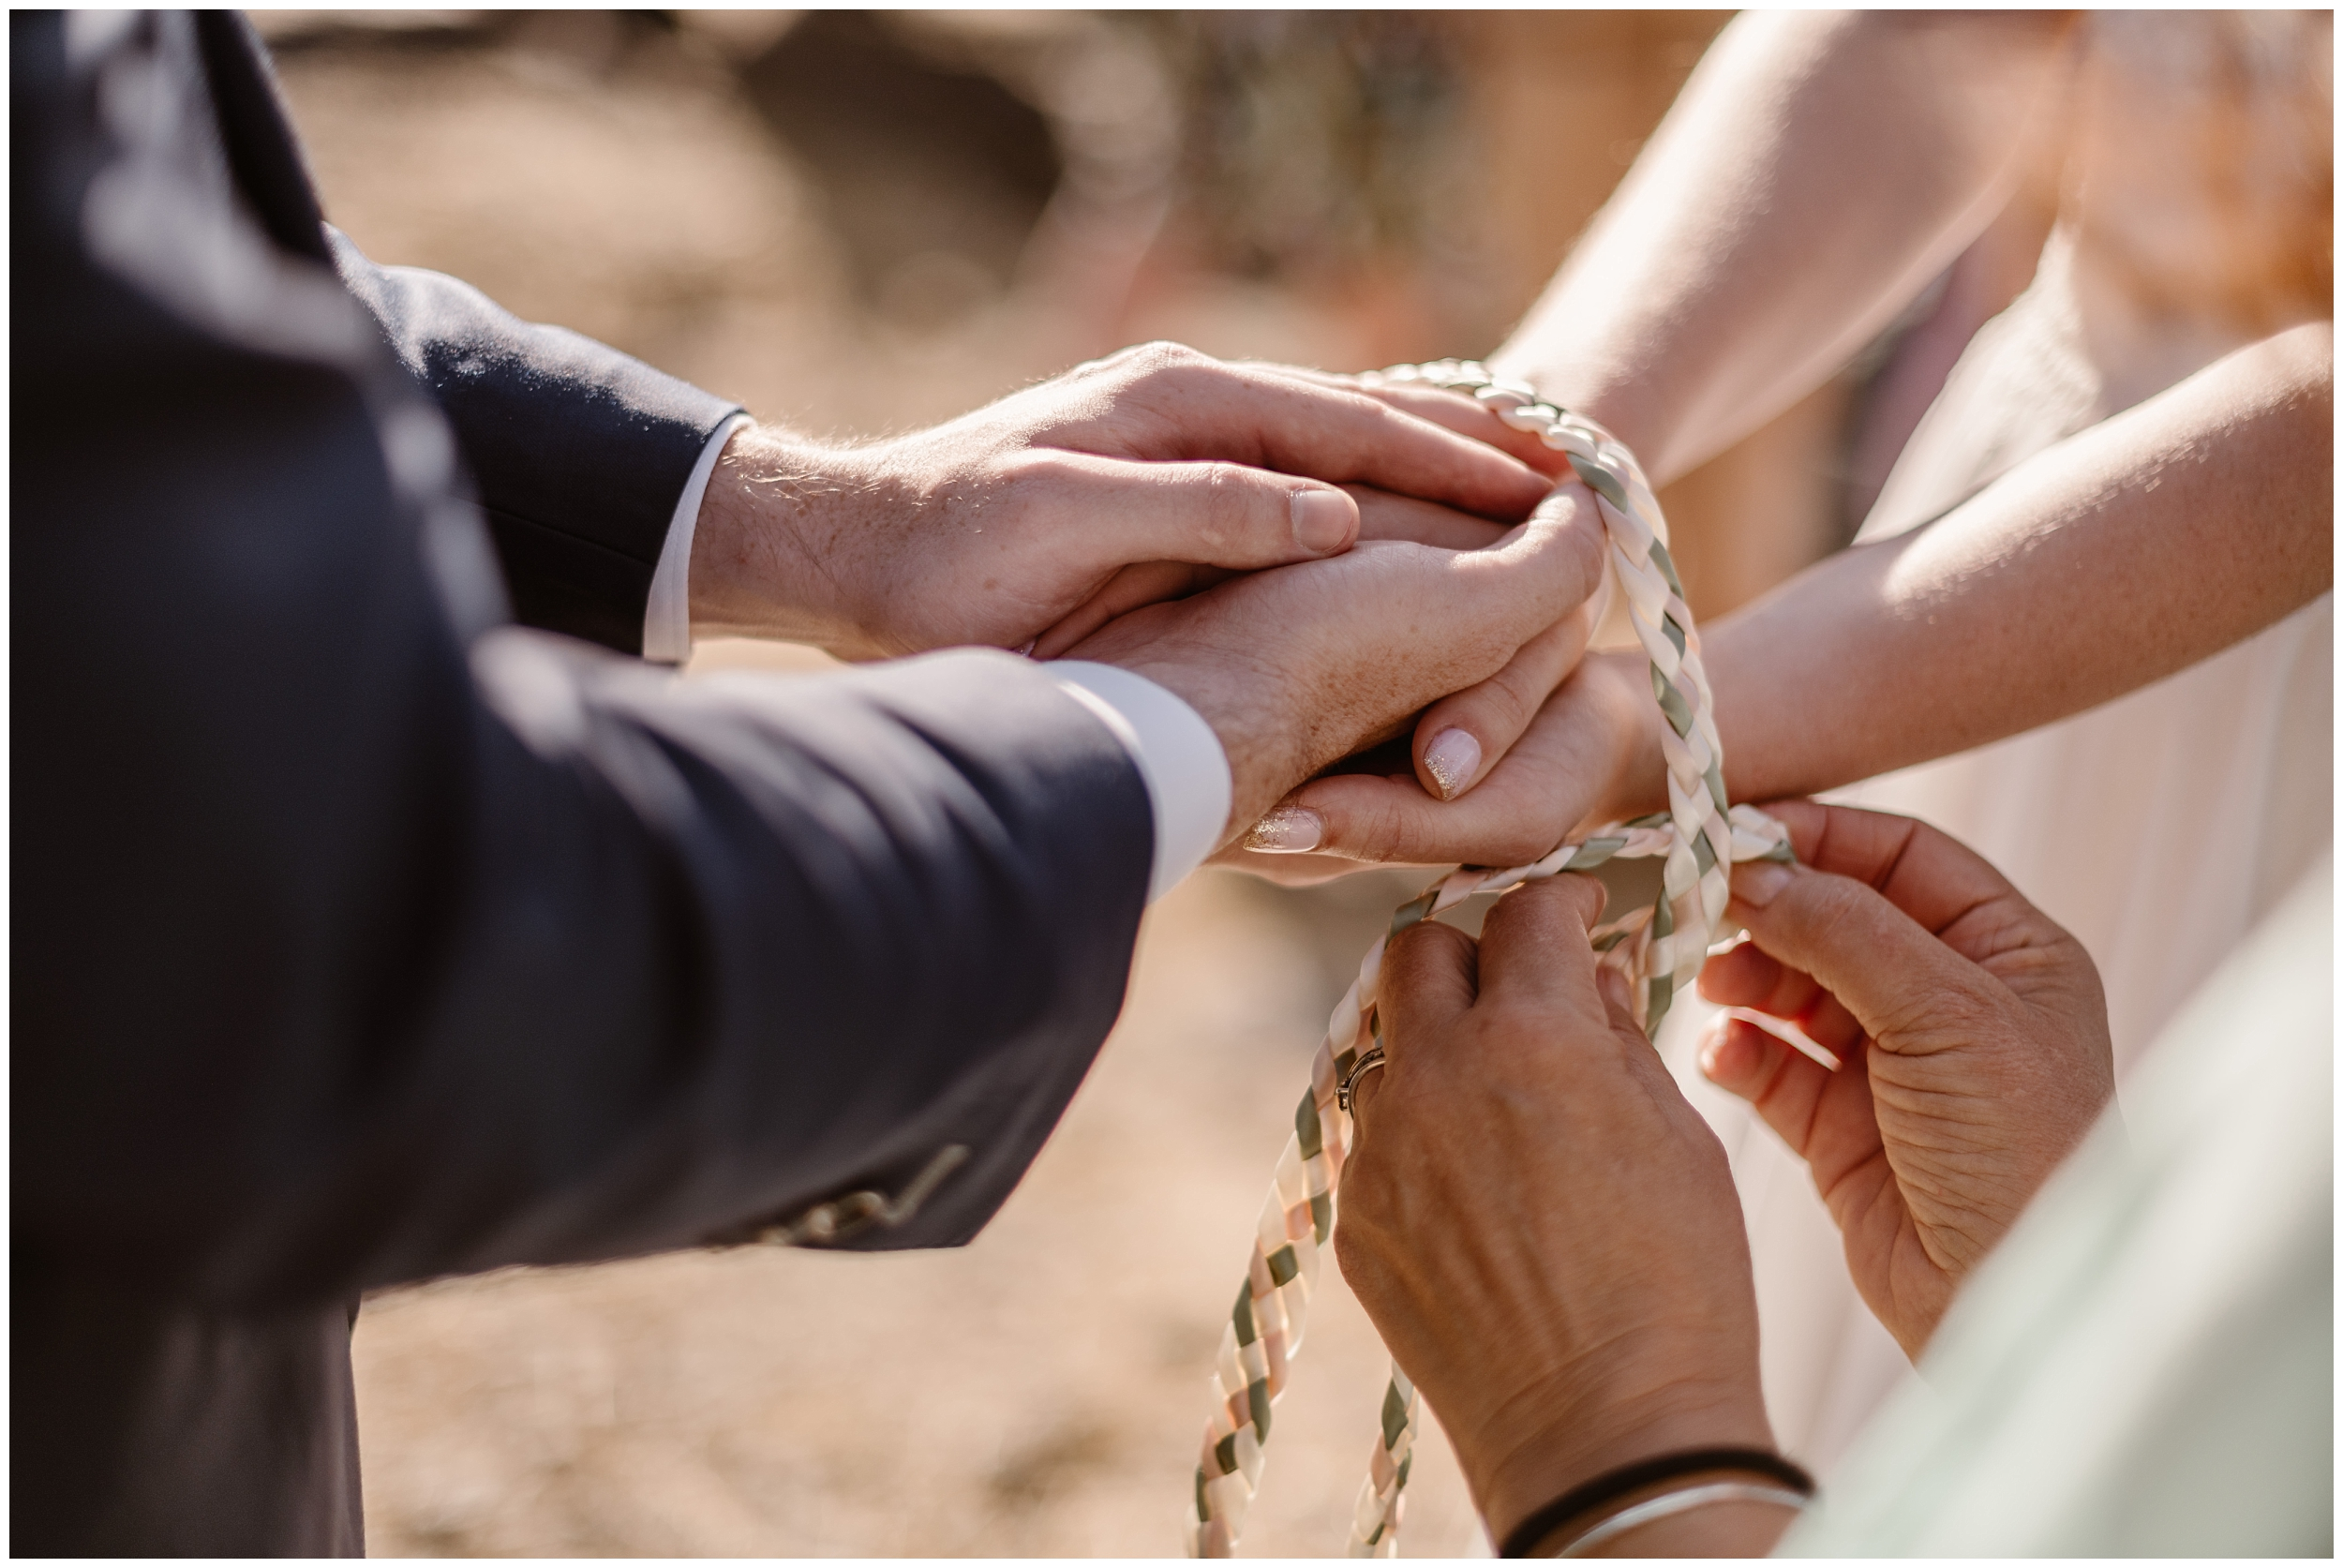 An officiant ties a braided cord around the hands of a bride or groom. A handfasting (or cord) ceremony is a non religious wedding ceremony and a non traditional wedding ceremony that allows a couple to symbolize the binding together of their marriage.